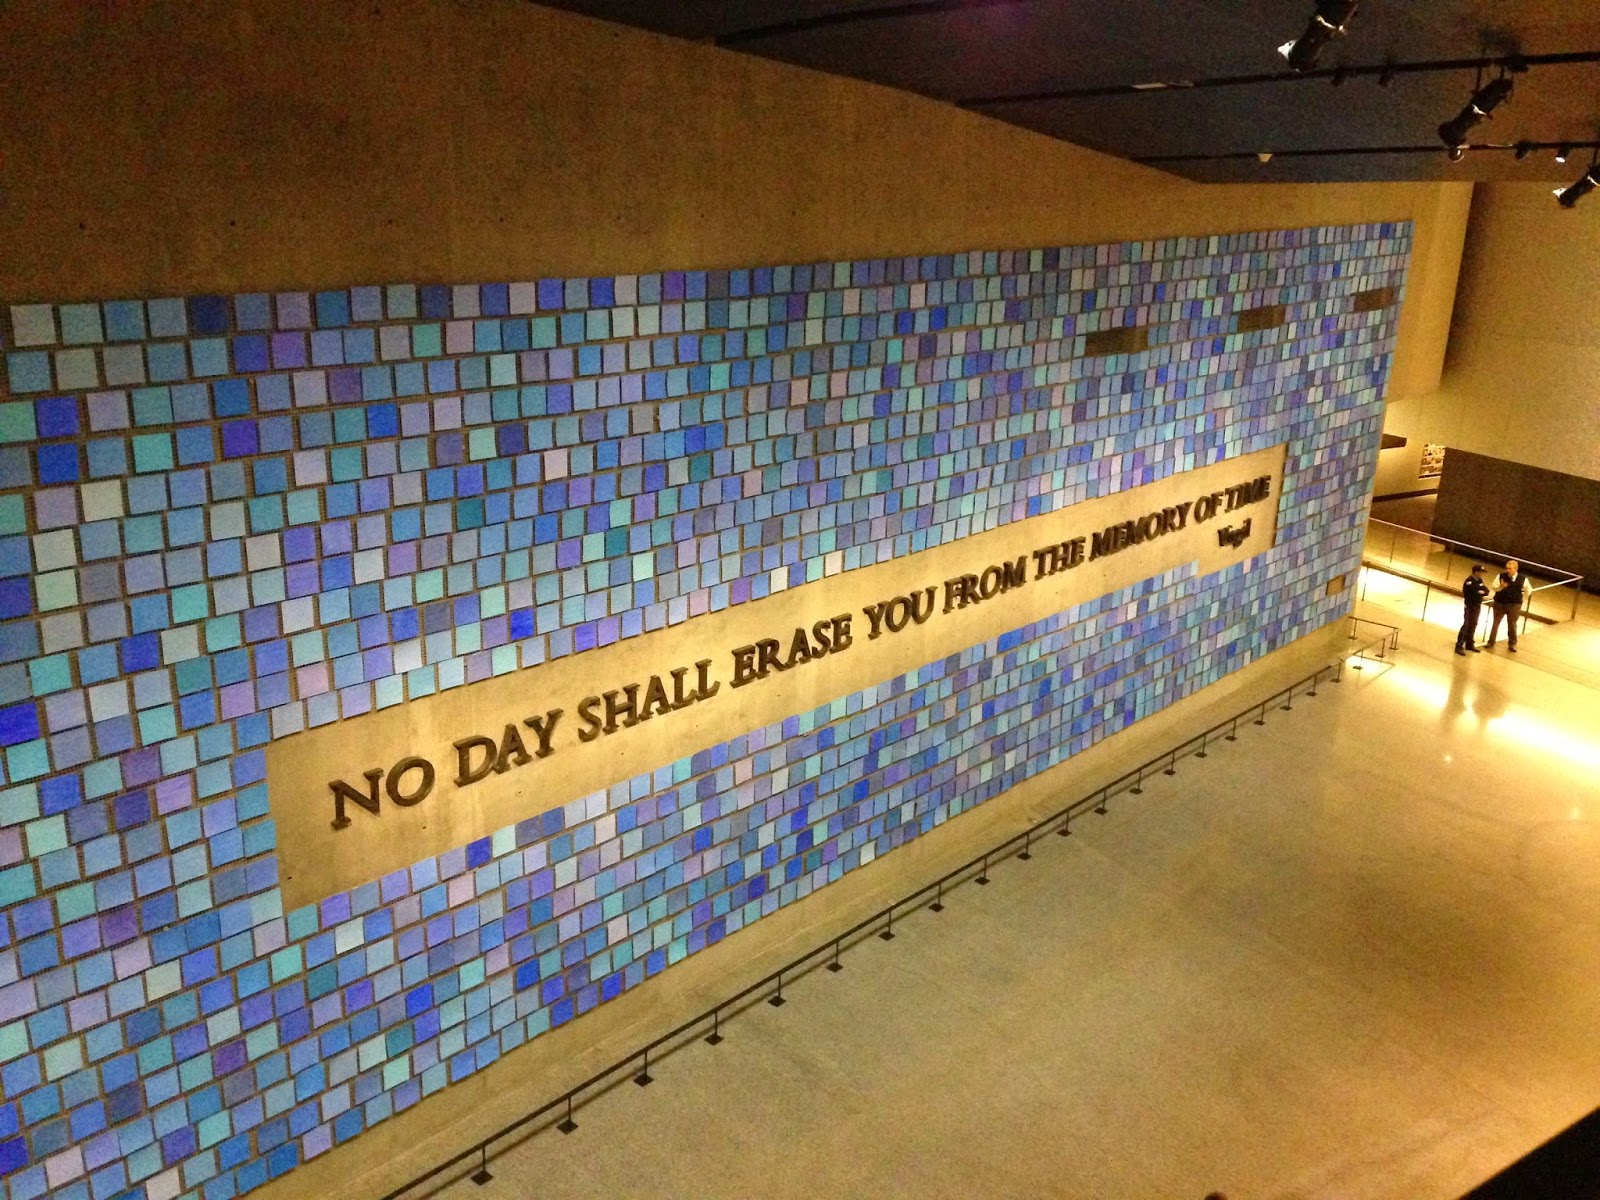 Virgil Quote located on a wall inside the 9/11 Museum